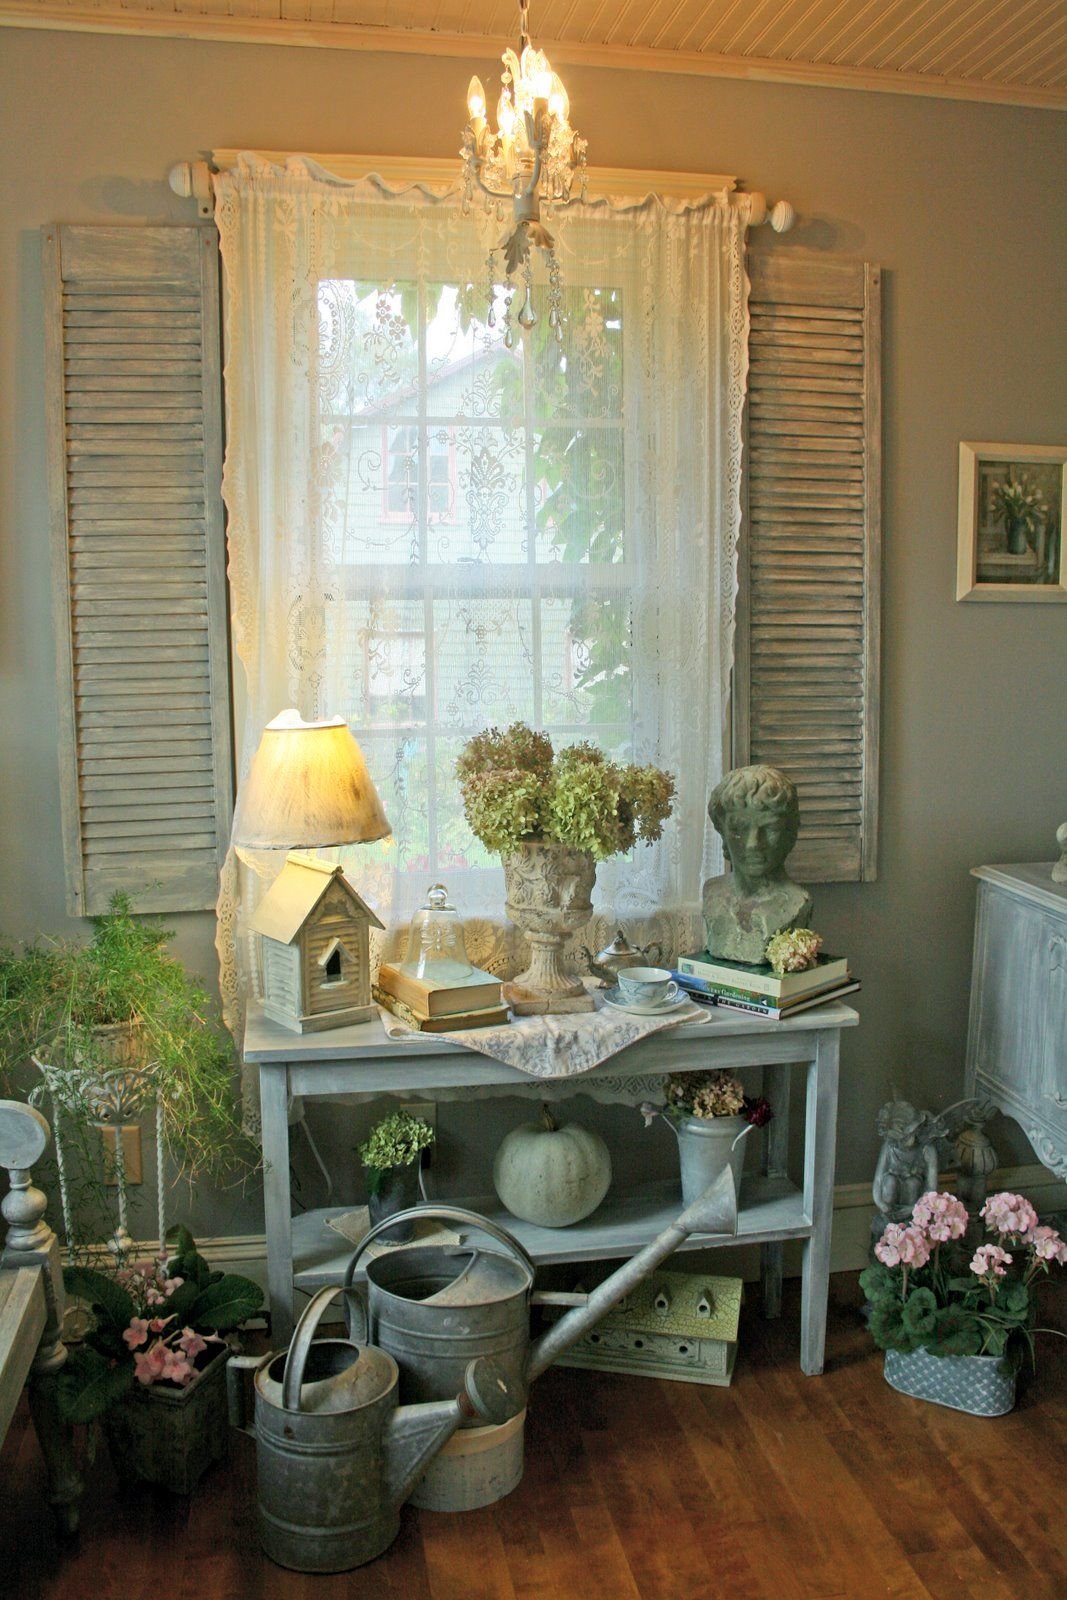 Cottage garden room theme shabby shutters inside the room many ideas on this blog